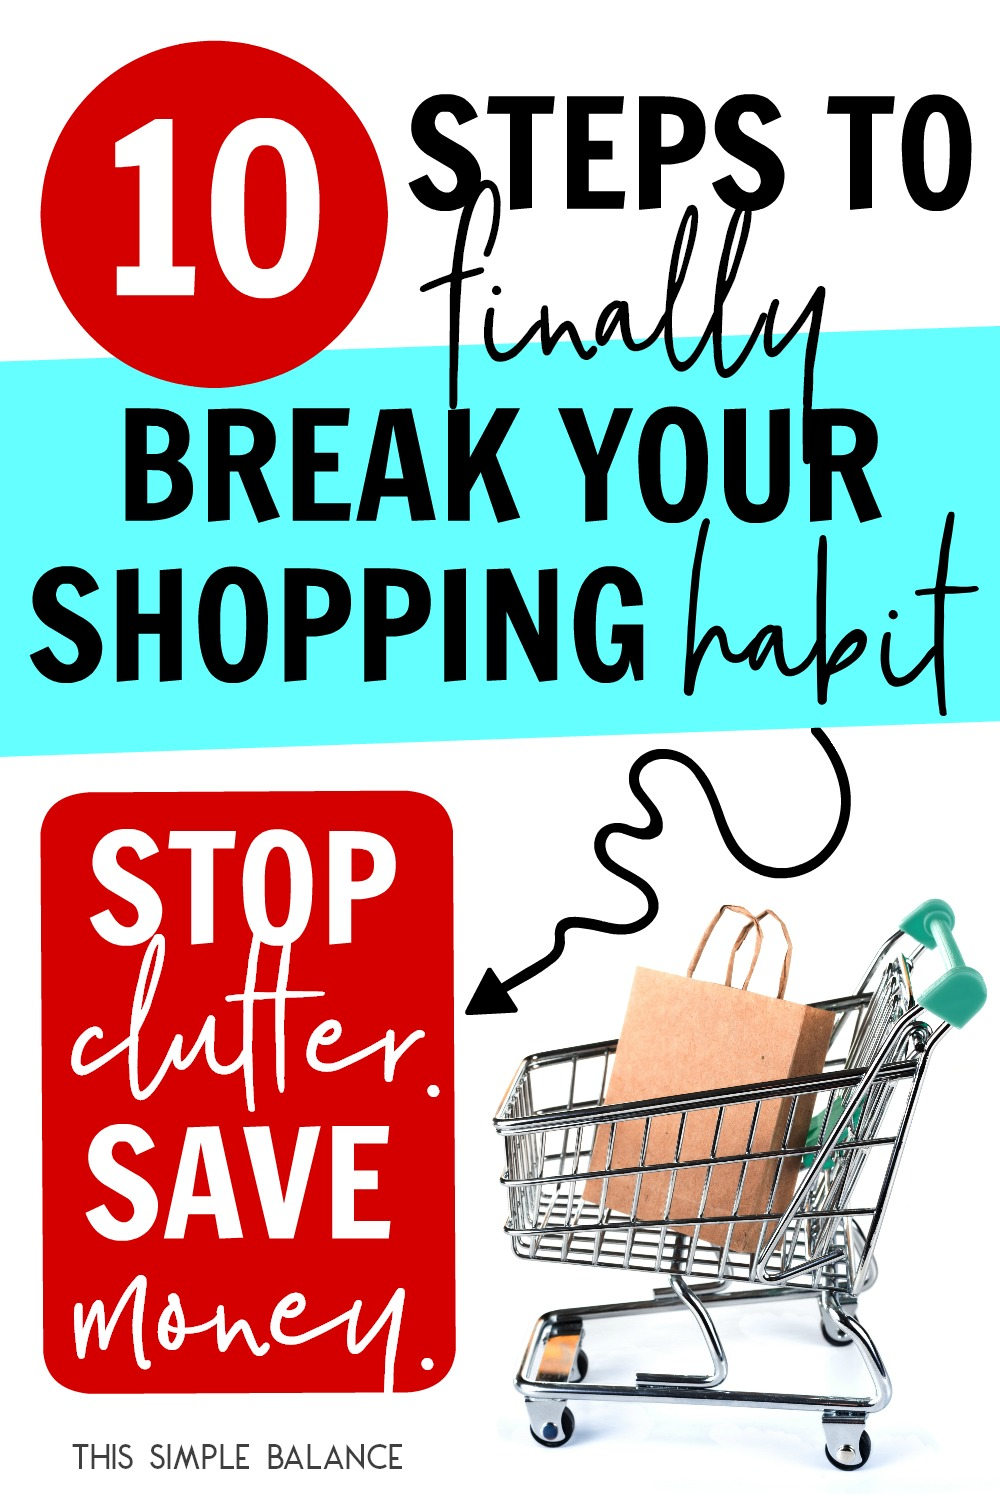 Ready to set new habits in the new year? Break your bad shopping habits to make way for healthier ones. Stop clutter. Save money. Train yourself to shop with purpose and intention.